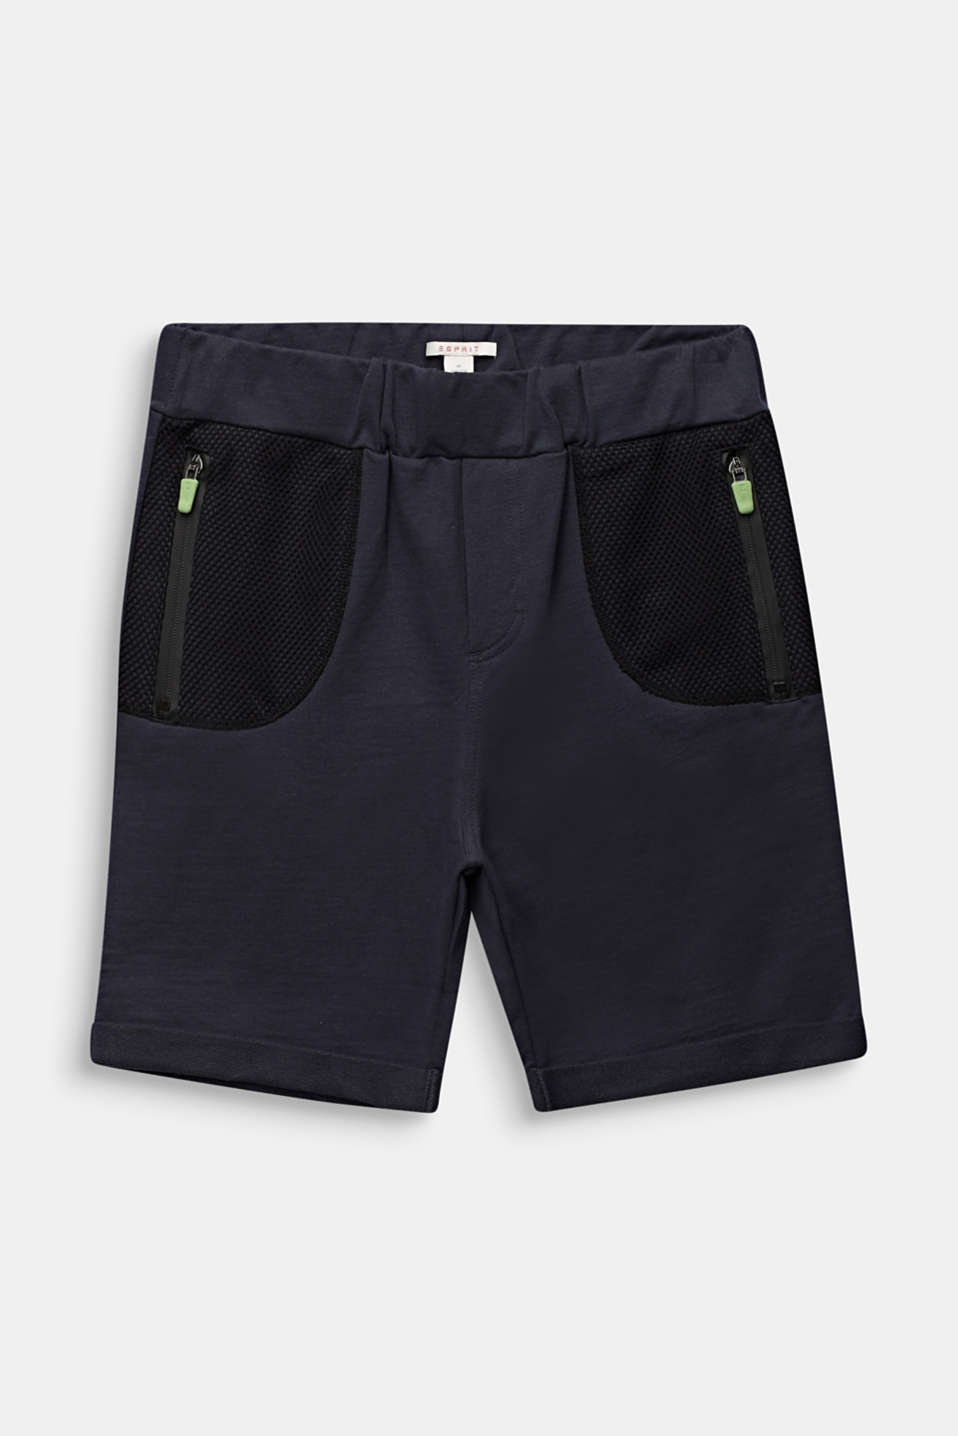 Esprit - Sweatshirt shorts with mesh inserts